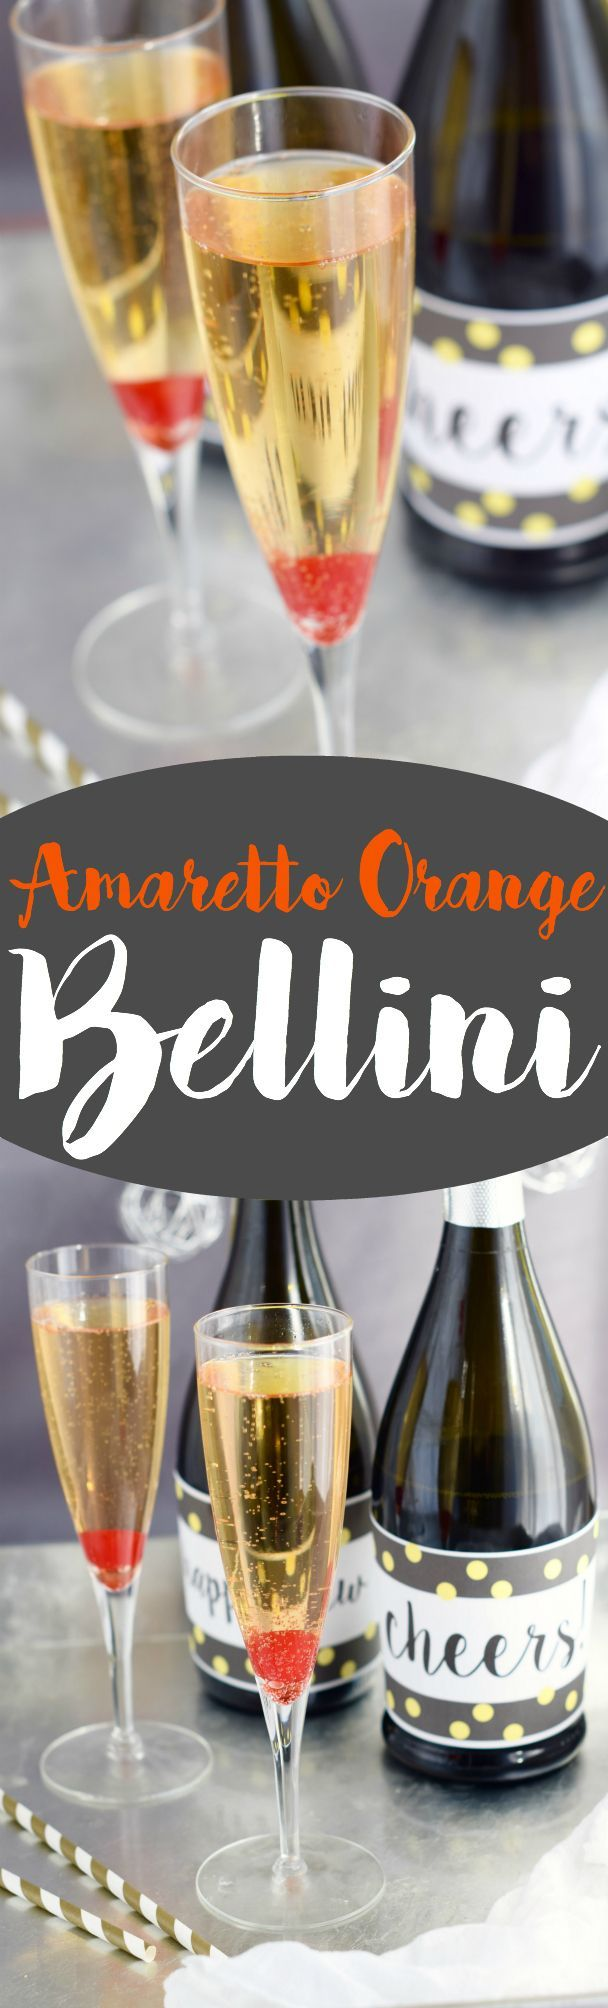 This Amaretto Orange Bellini is a super fast cocktail that is going to be your new favorite way to drink champagne!: